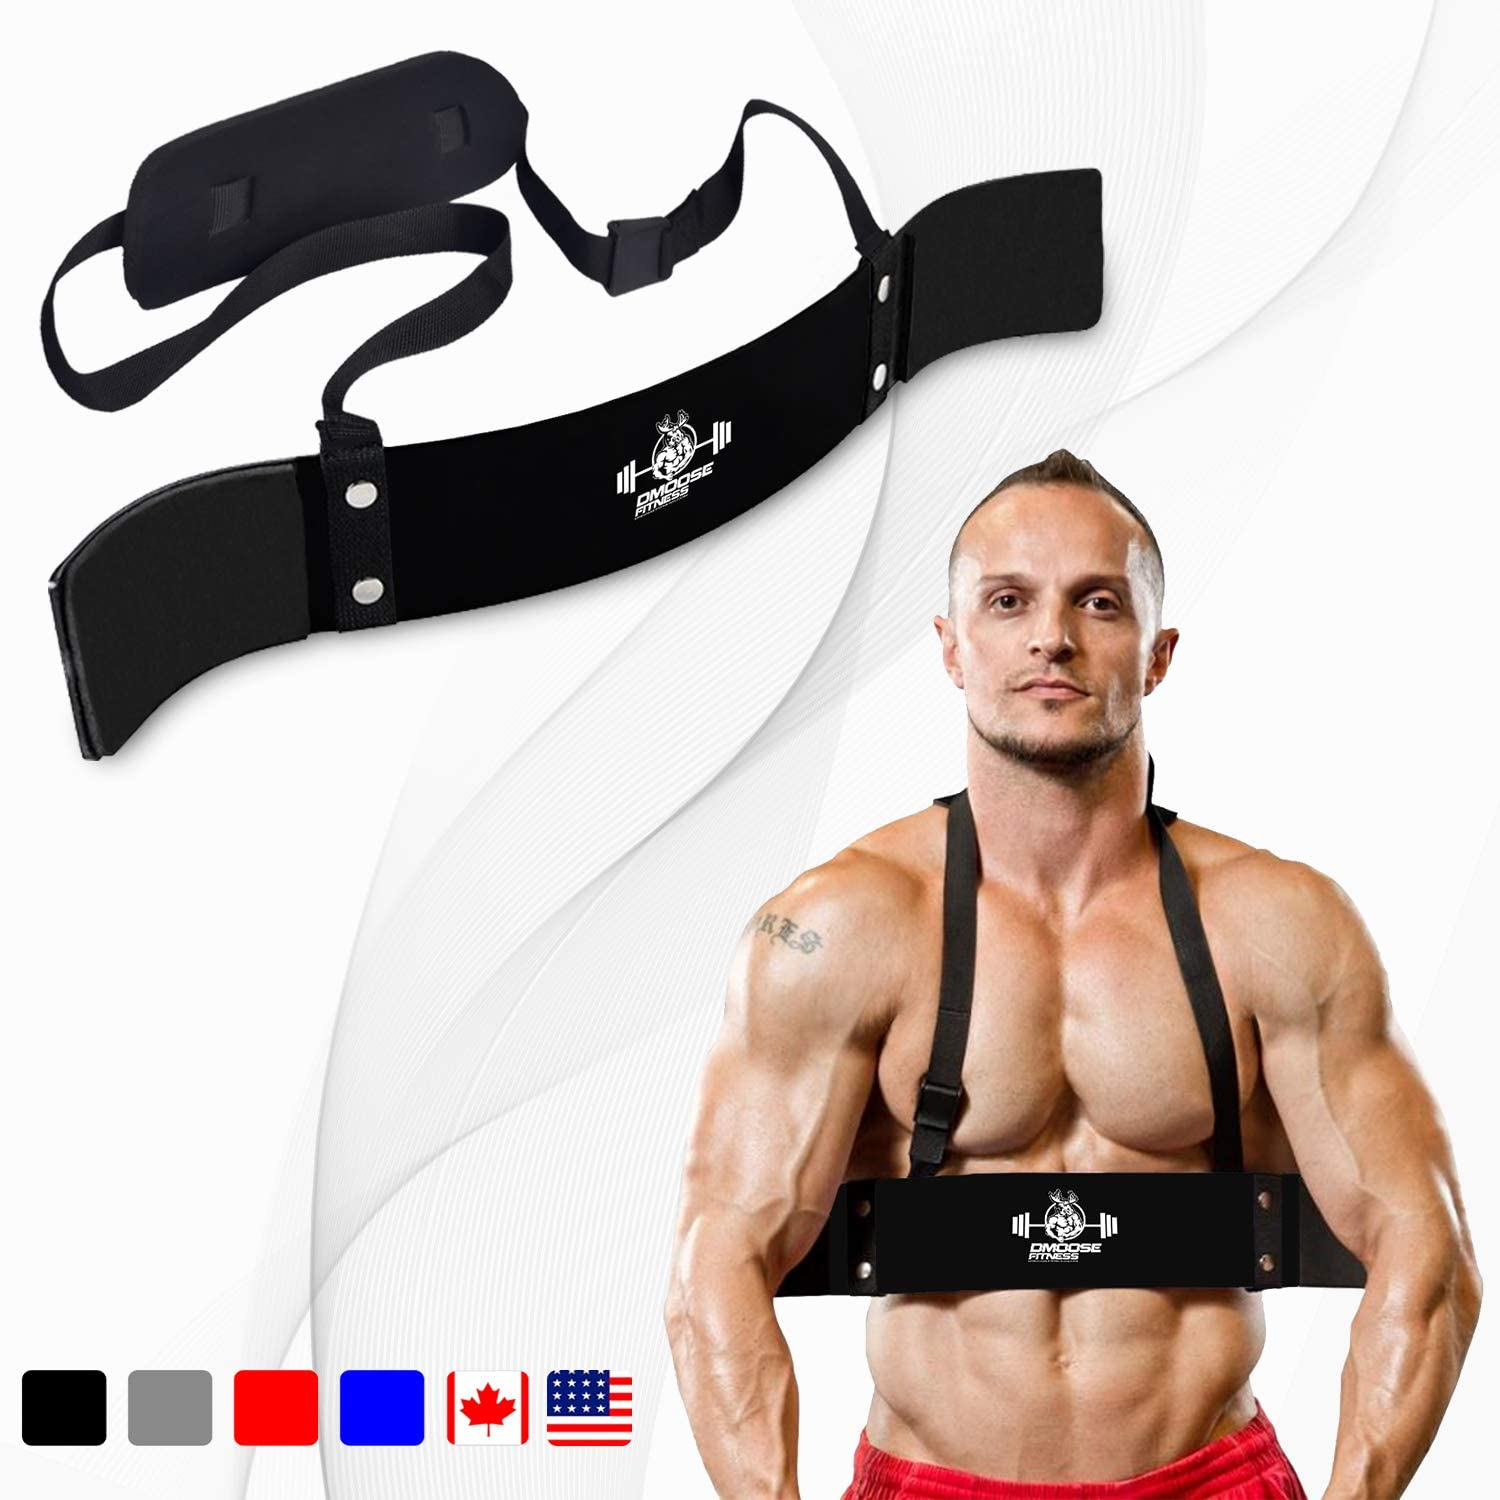 DMoose Fitness Arm Curl Blaster for Bicep Body Building and Muscle Strength Gains, Contoured and Adjustable Isolate for Curling and Weightlifting, Well Balanced Support : Sports & Outdoors